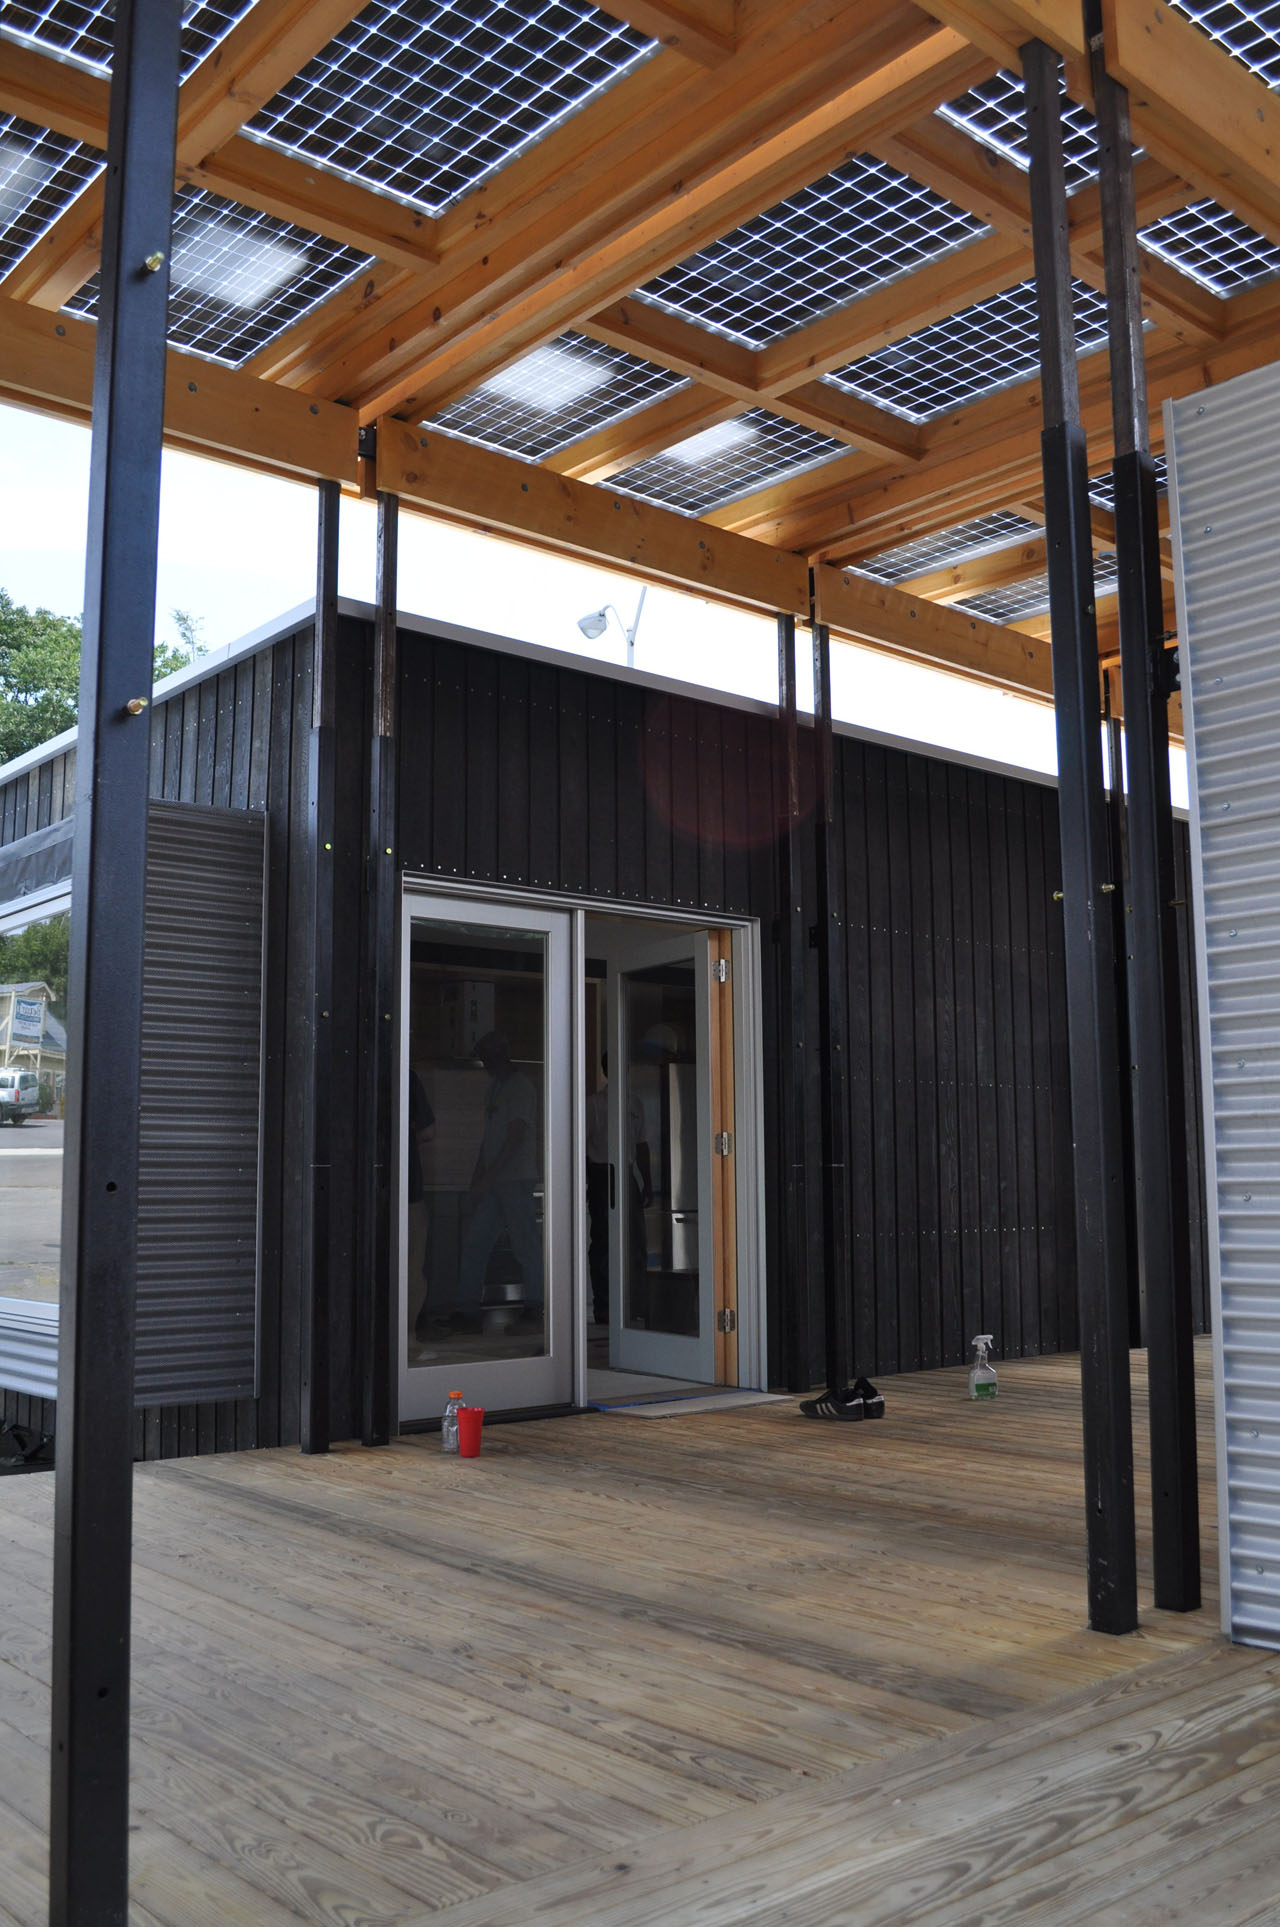 The Solar Canopy of the Solar Homestead by Appalachian State University for the Solar Decathlon